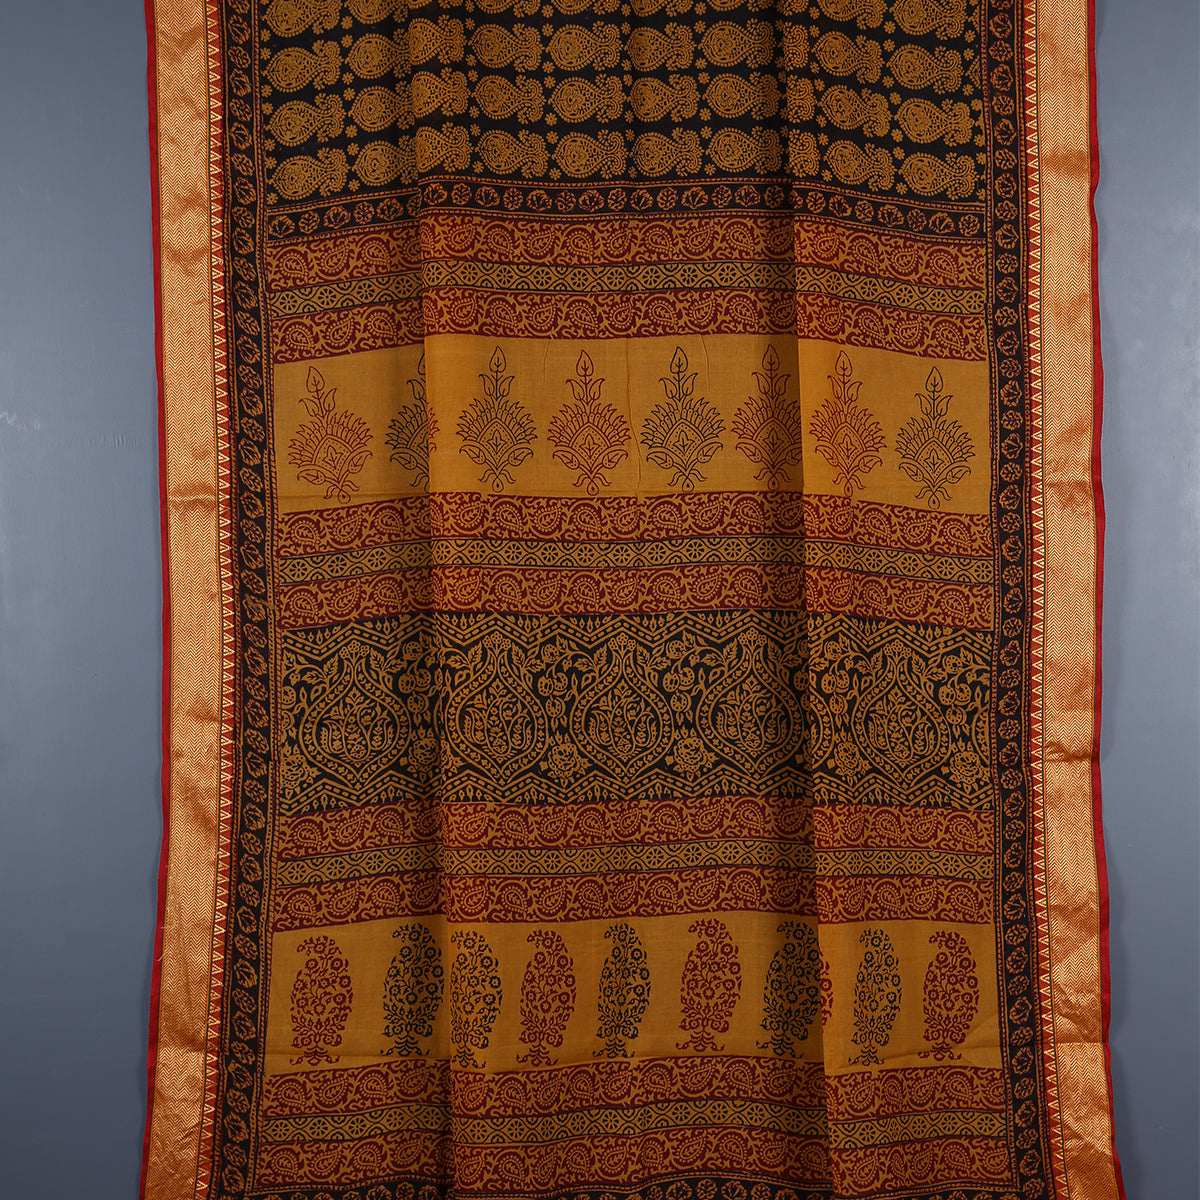 Bagh Hand Block Printed Naturally Dyed Golden Border Cotton Saree with Blouse 6